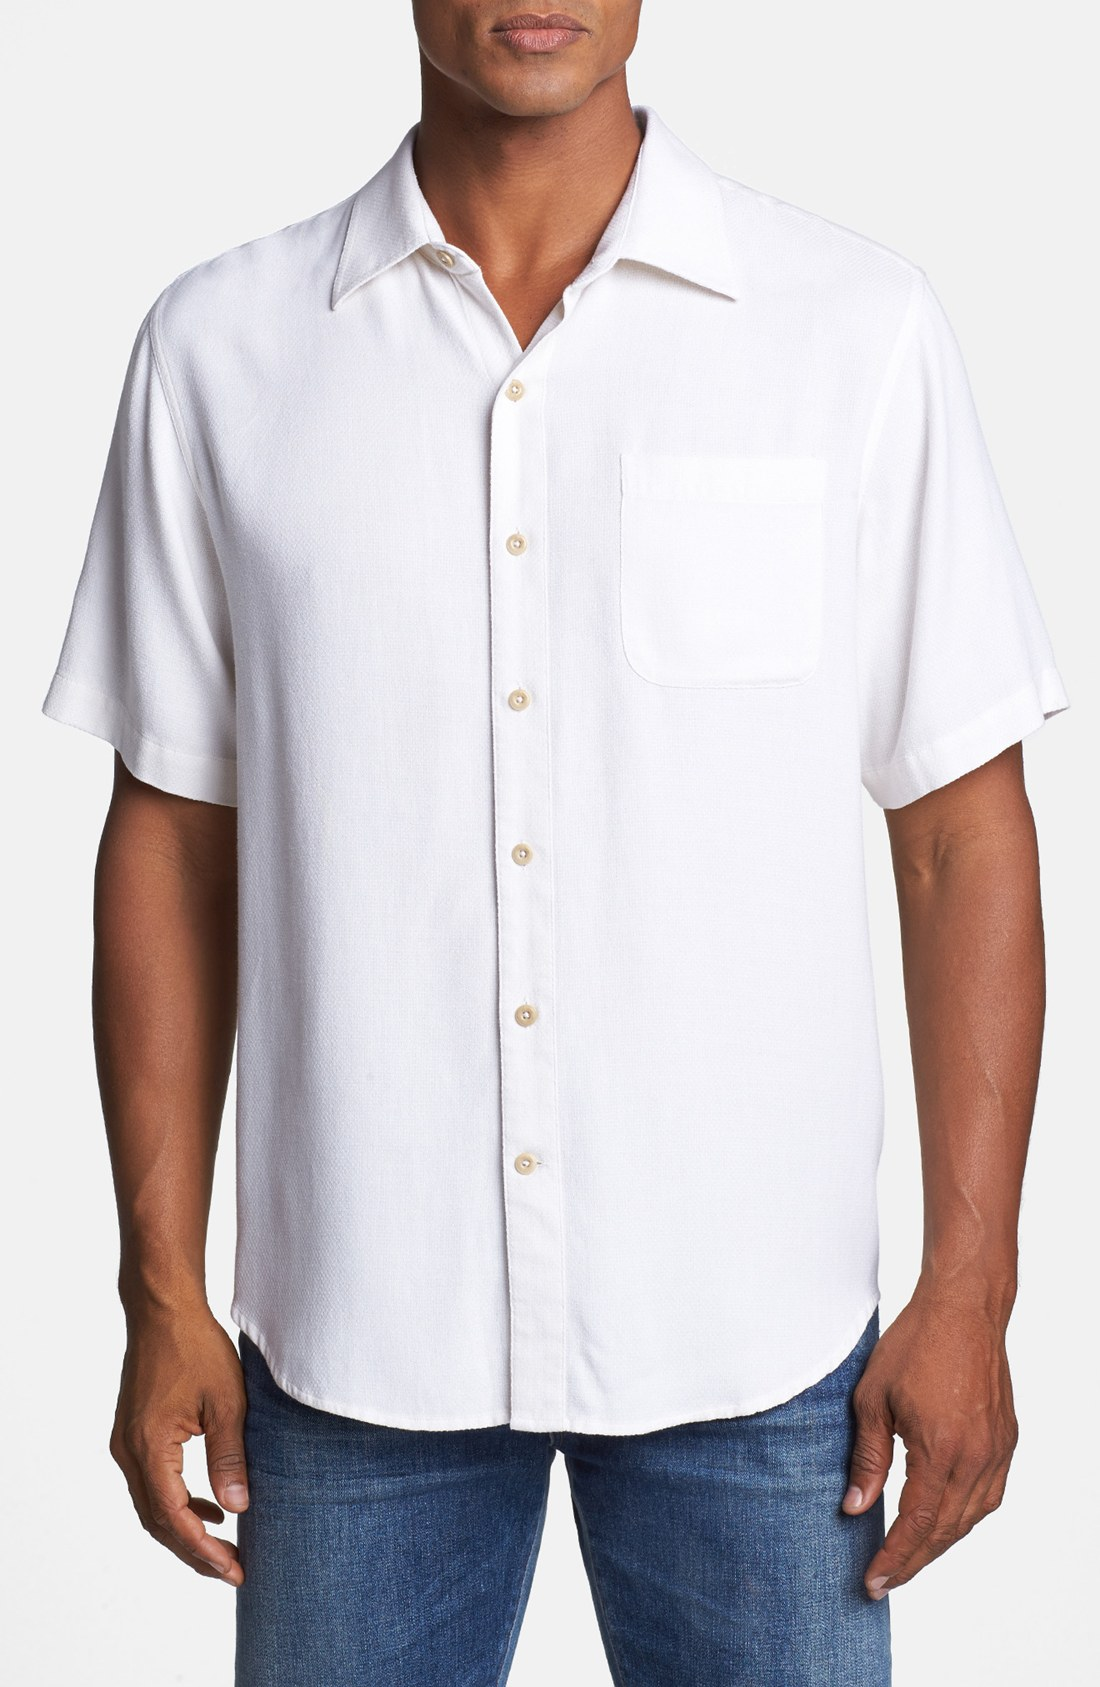 """Richard David for Men – Where Classic and Contemporary Meet! Men's Silk Shirts. Men's Sport Shirts Product(s) Men's Sport Shirts. Men's Sweaters Men's Tori Richard Cotton Lawn Relaxed Fit Short Sleeve Shirt, Maharaja # Blue """"USE COUPON TR1 AT CHECK OUT""""."""